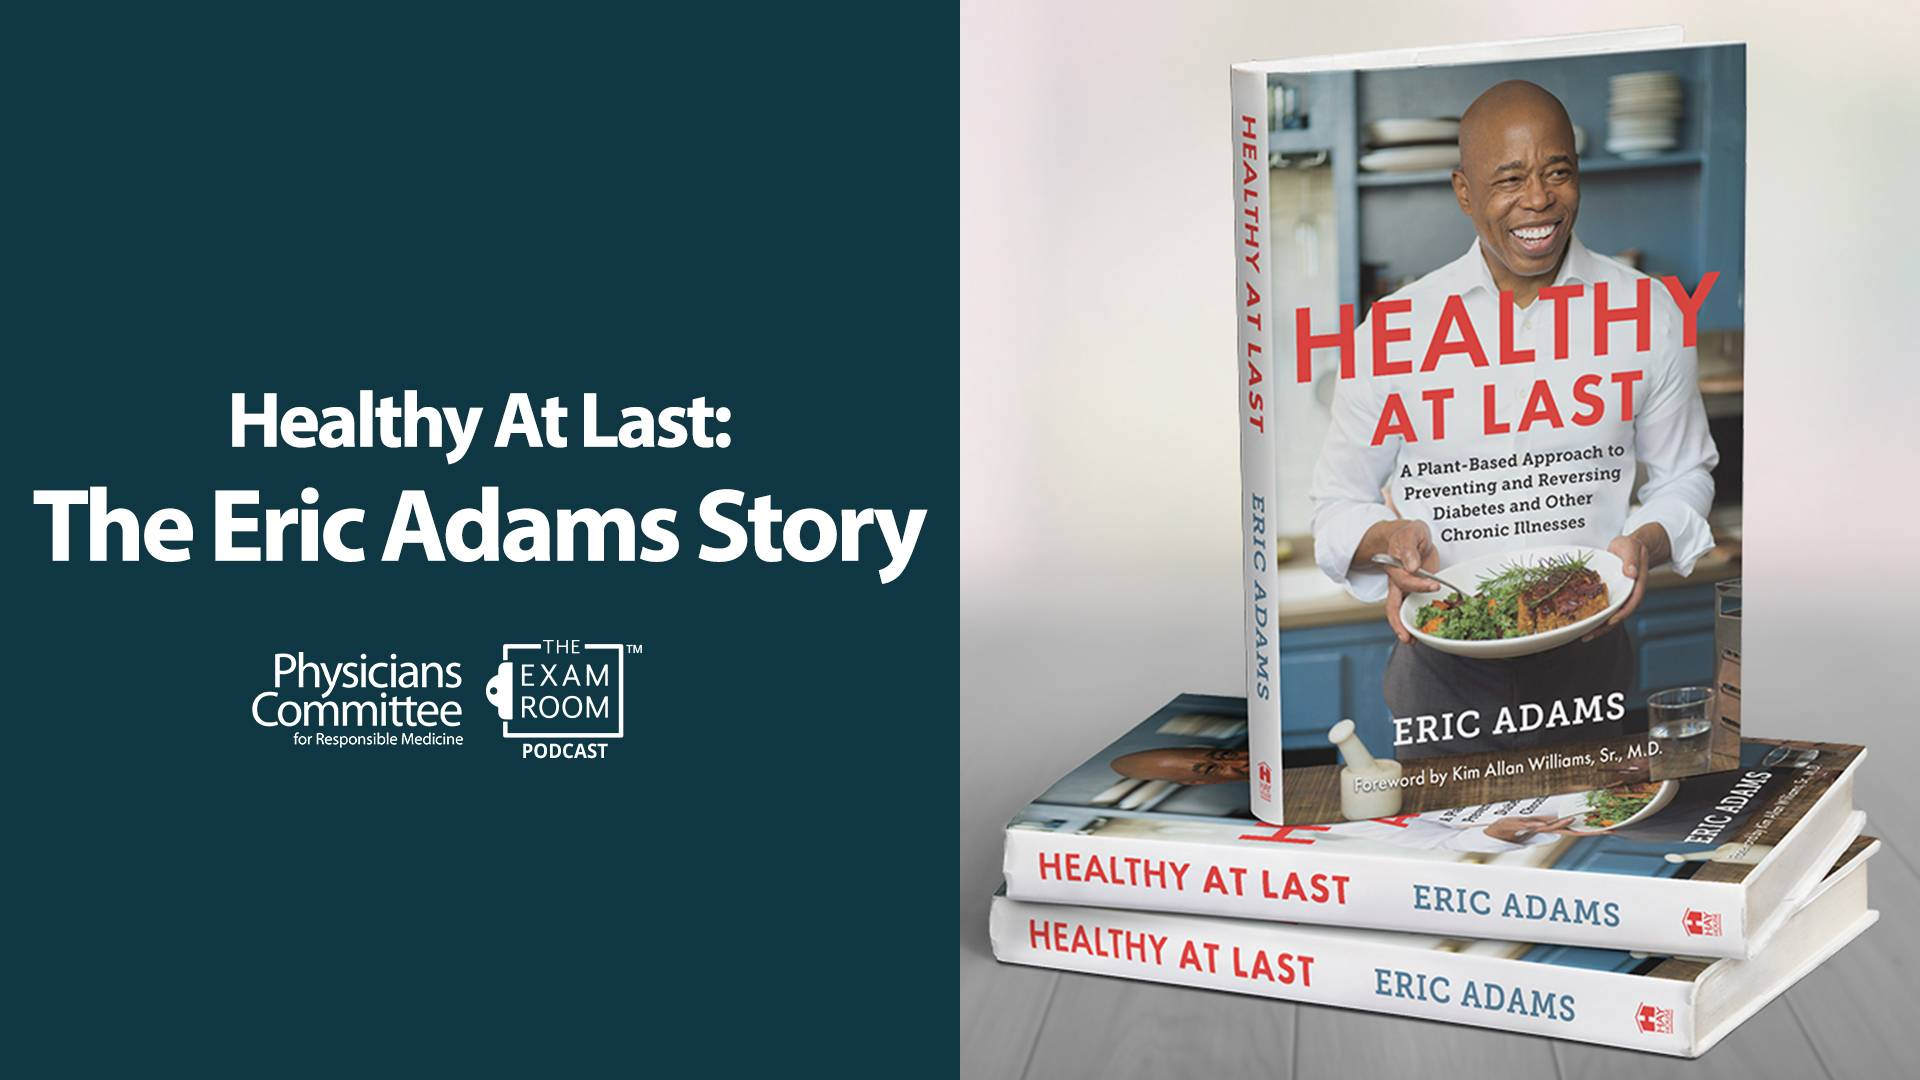 Healthy at Last: The Eric Adams Story